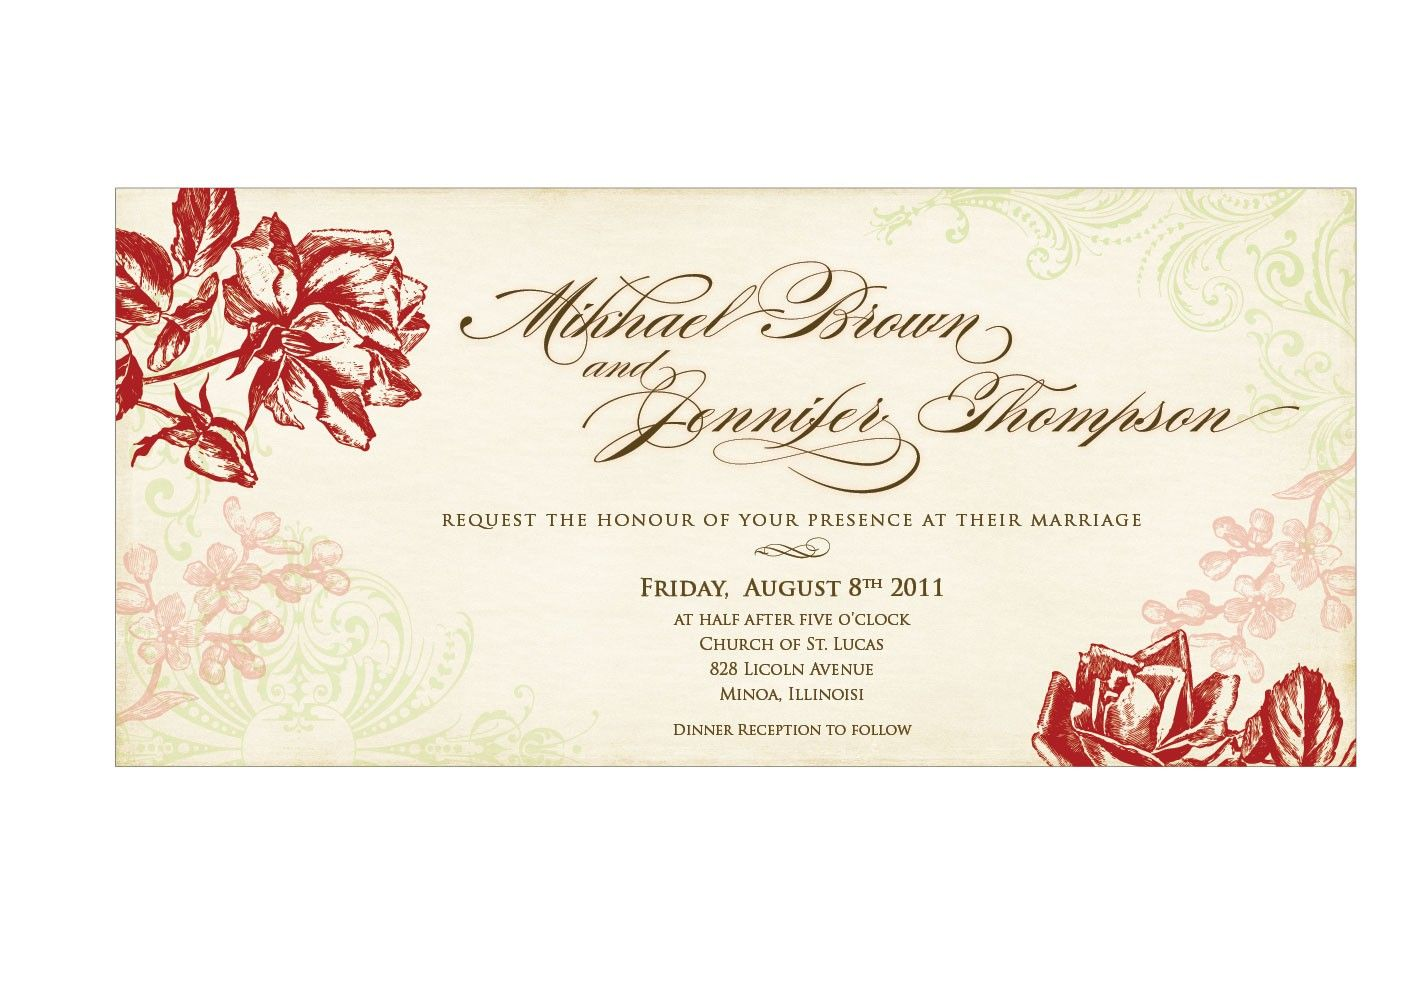 Wedding Invitation Templates Wedding Invitation Templates - Wedding reception invitation templates free